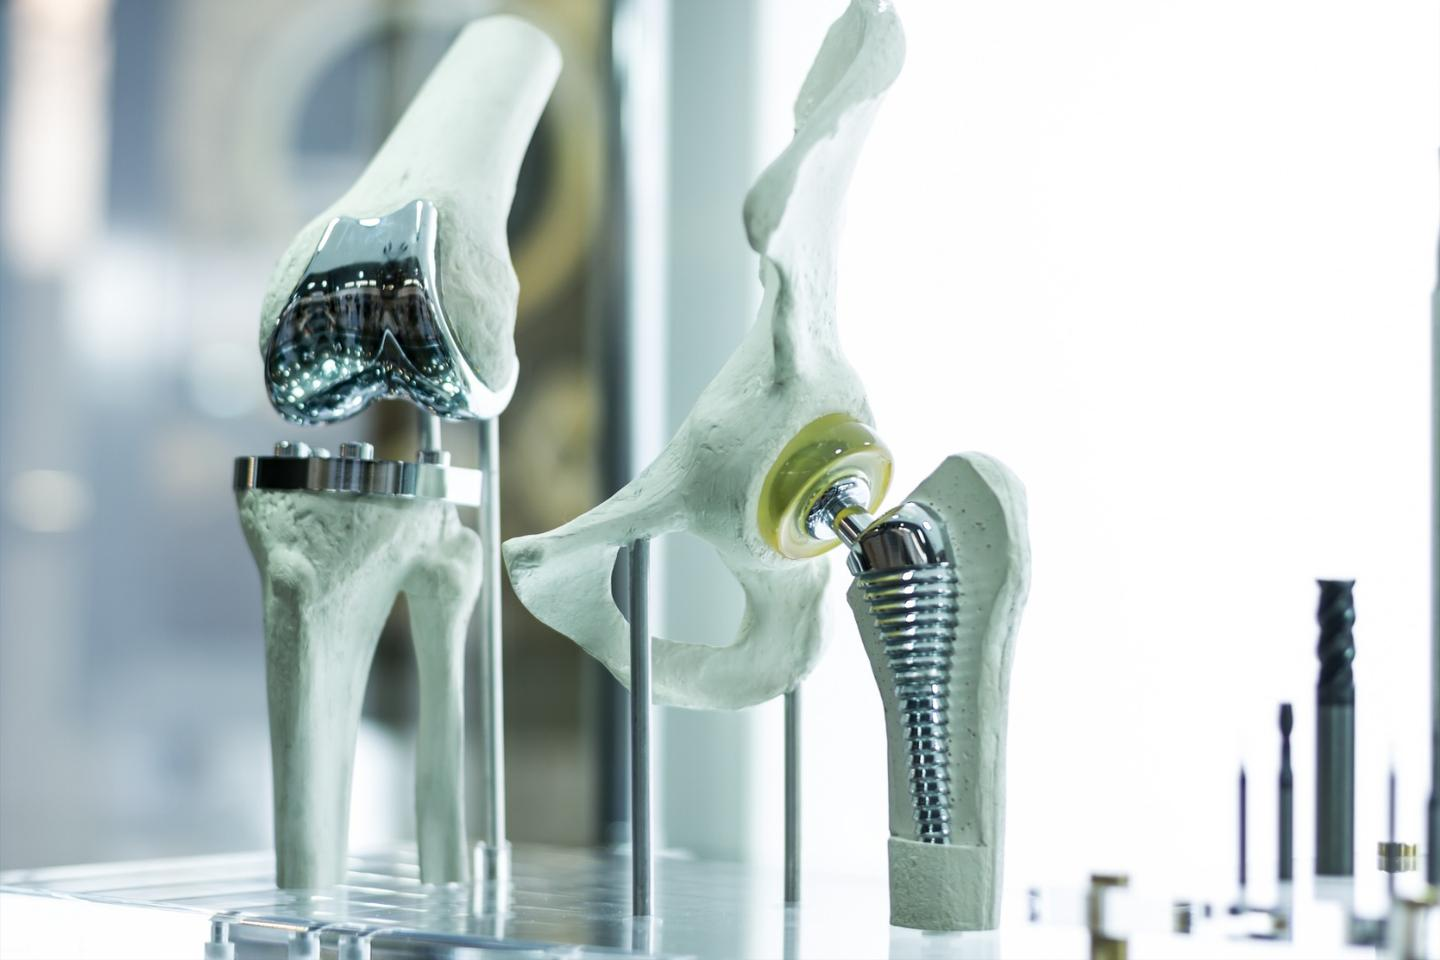 The microgels could be applied to implants such as artificial knees or hips